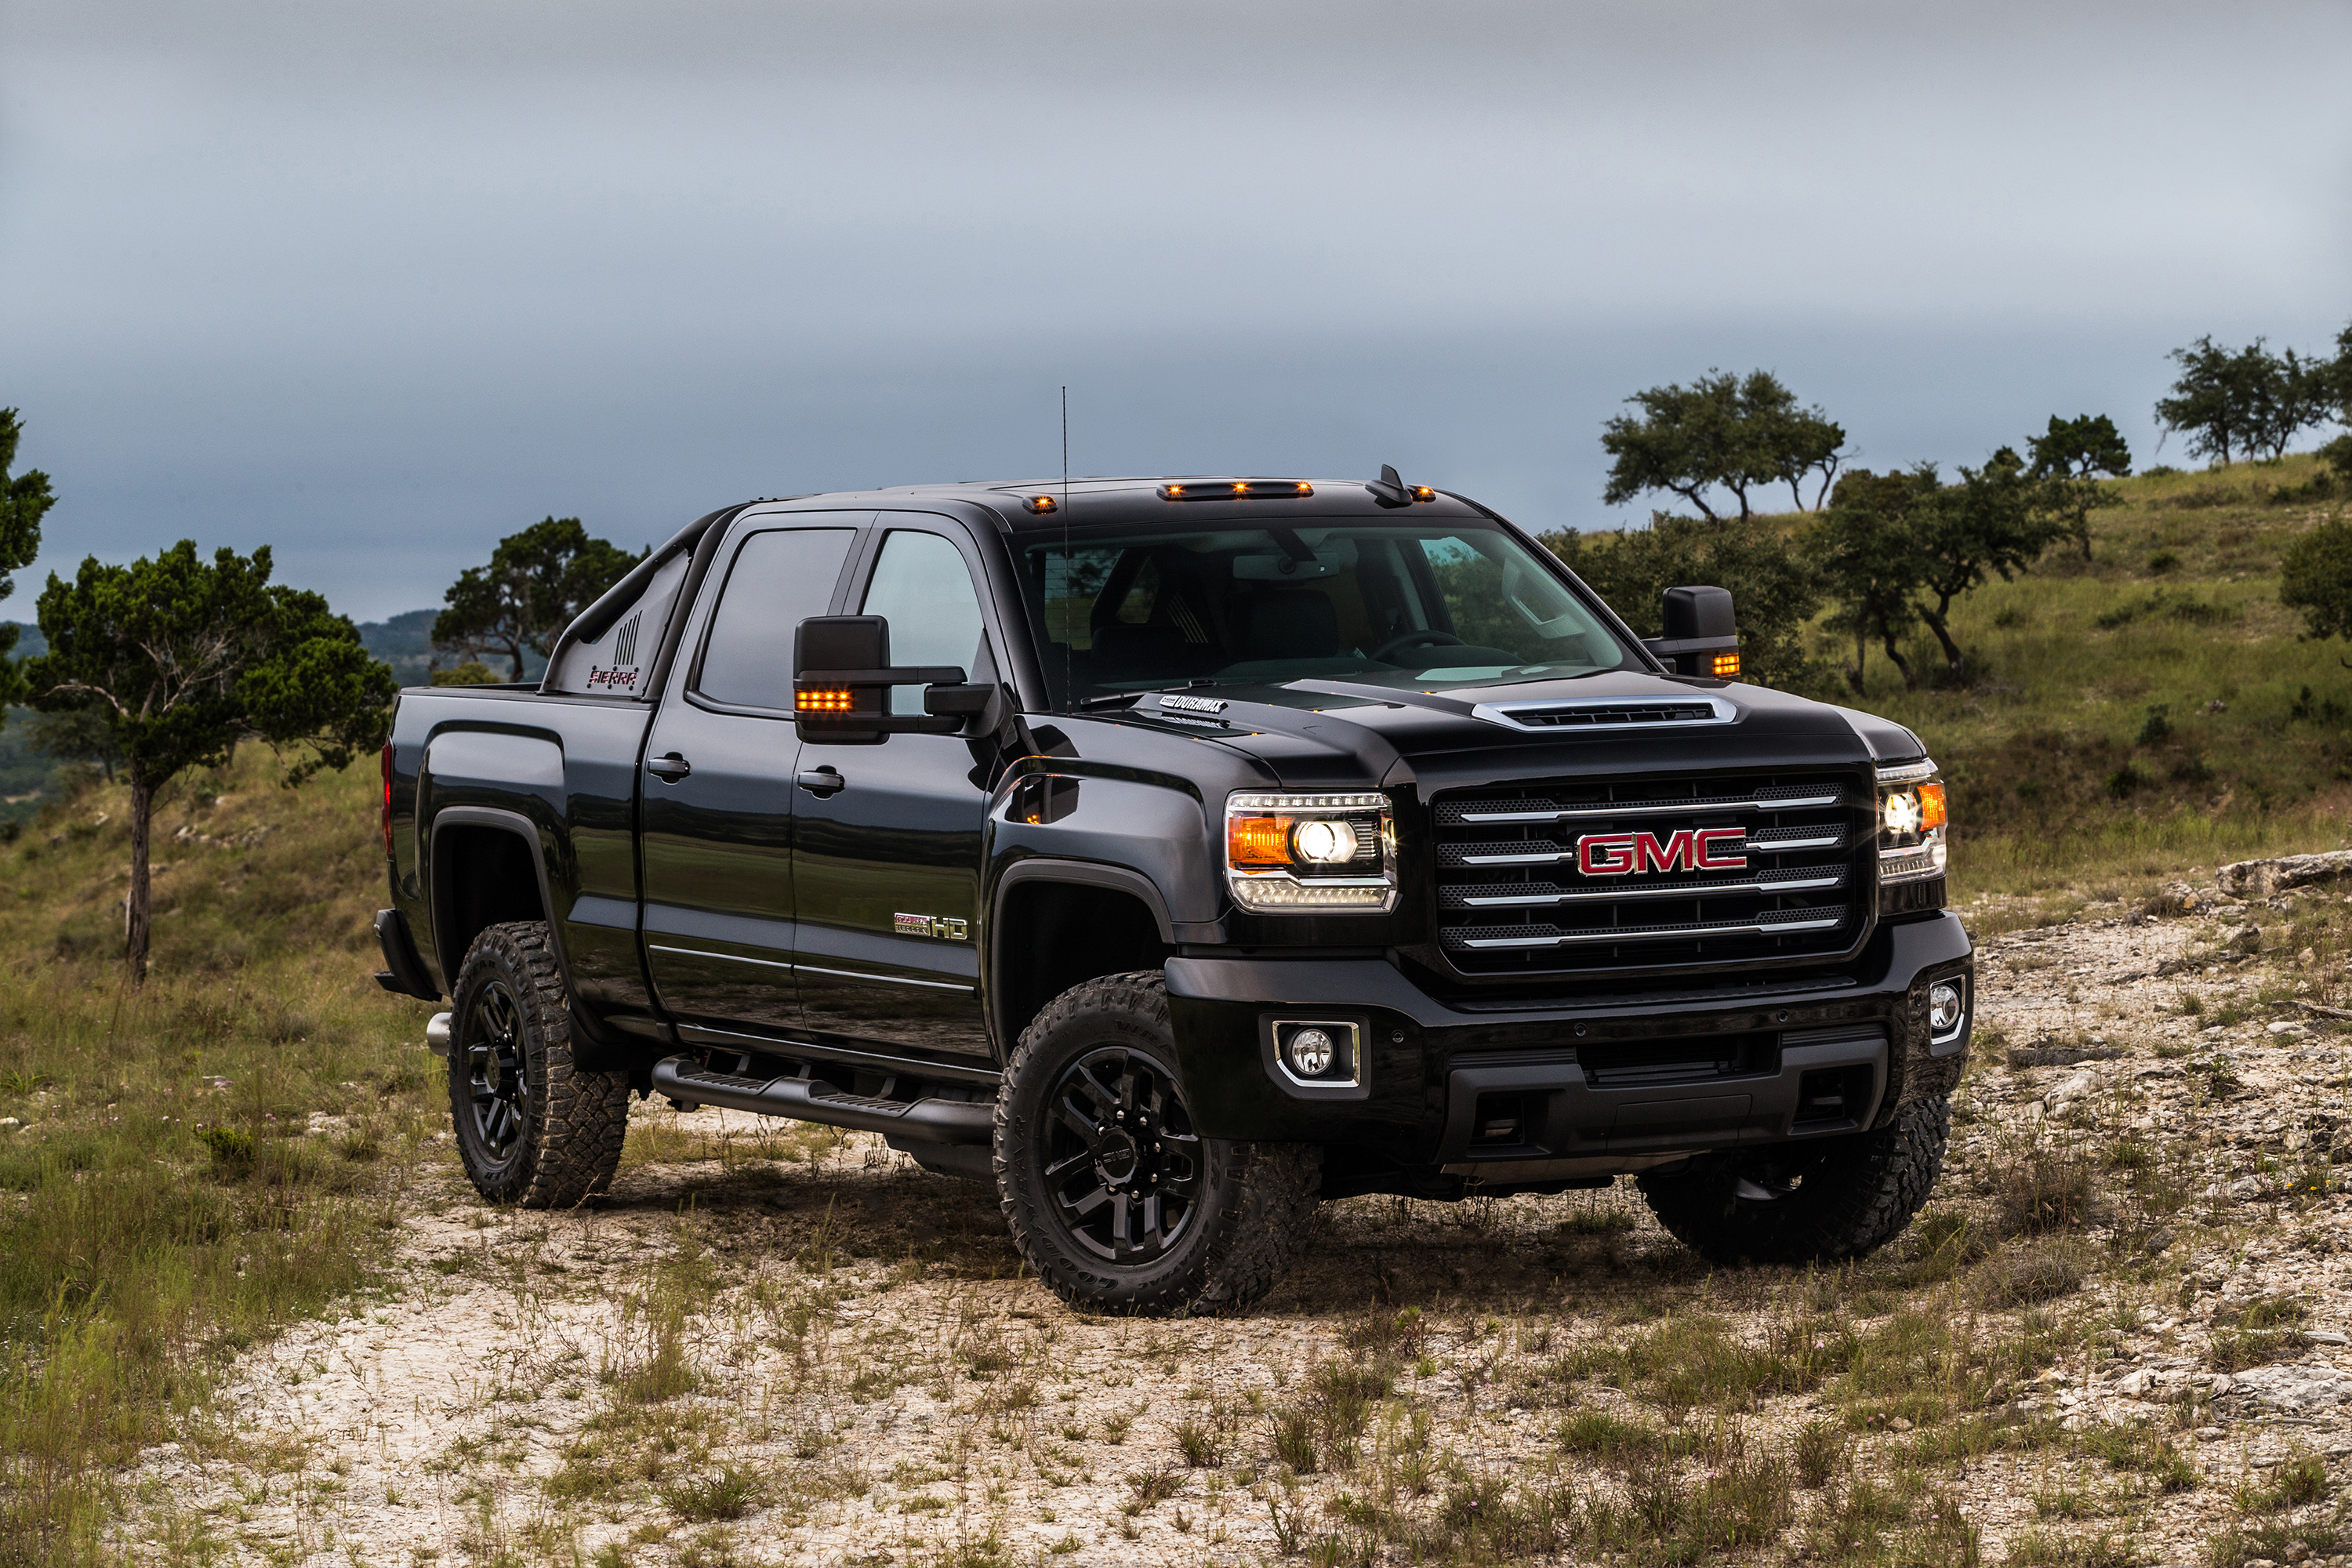 Gmc Canyon All Terrain >> 2017 GMC Sierra 2500HD All Terrain X Reporting For Off-Road Duty - autoevolution